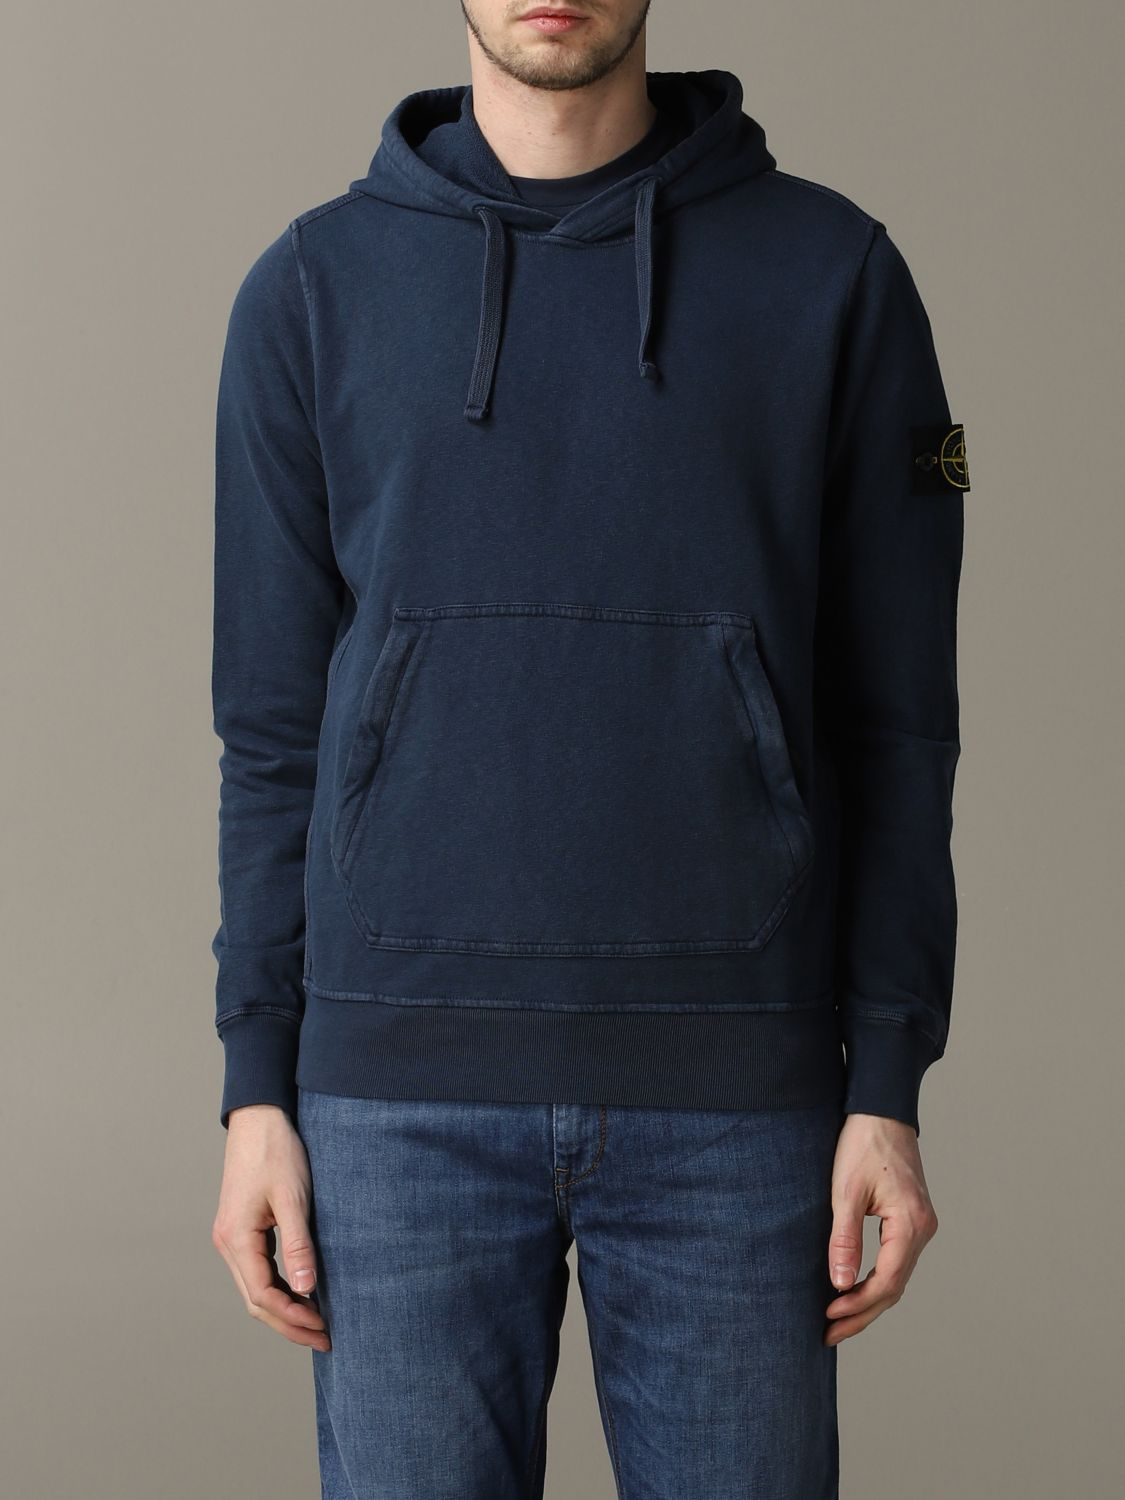 Sweatshirt men Stone Island avion 1